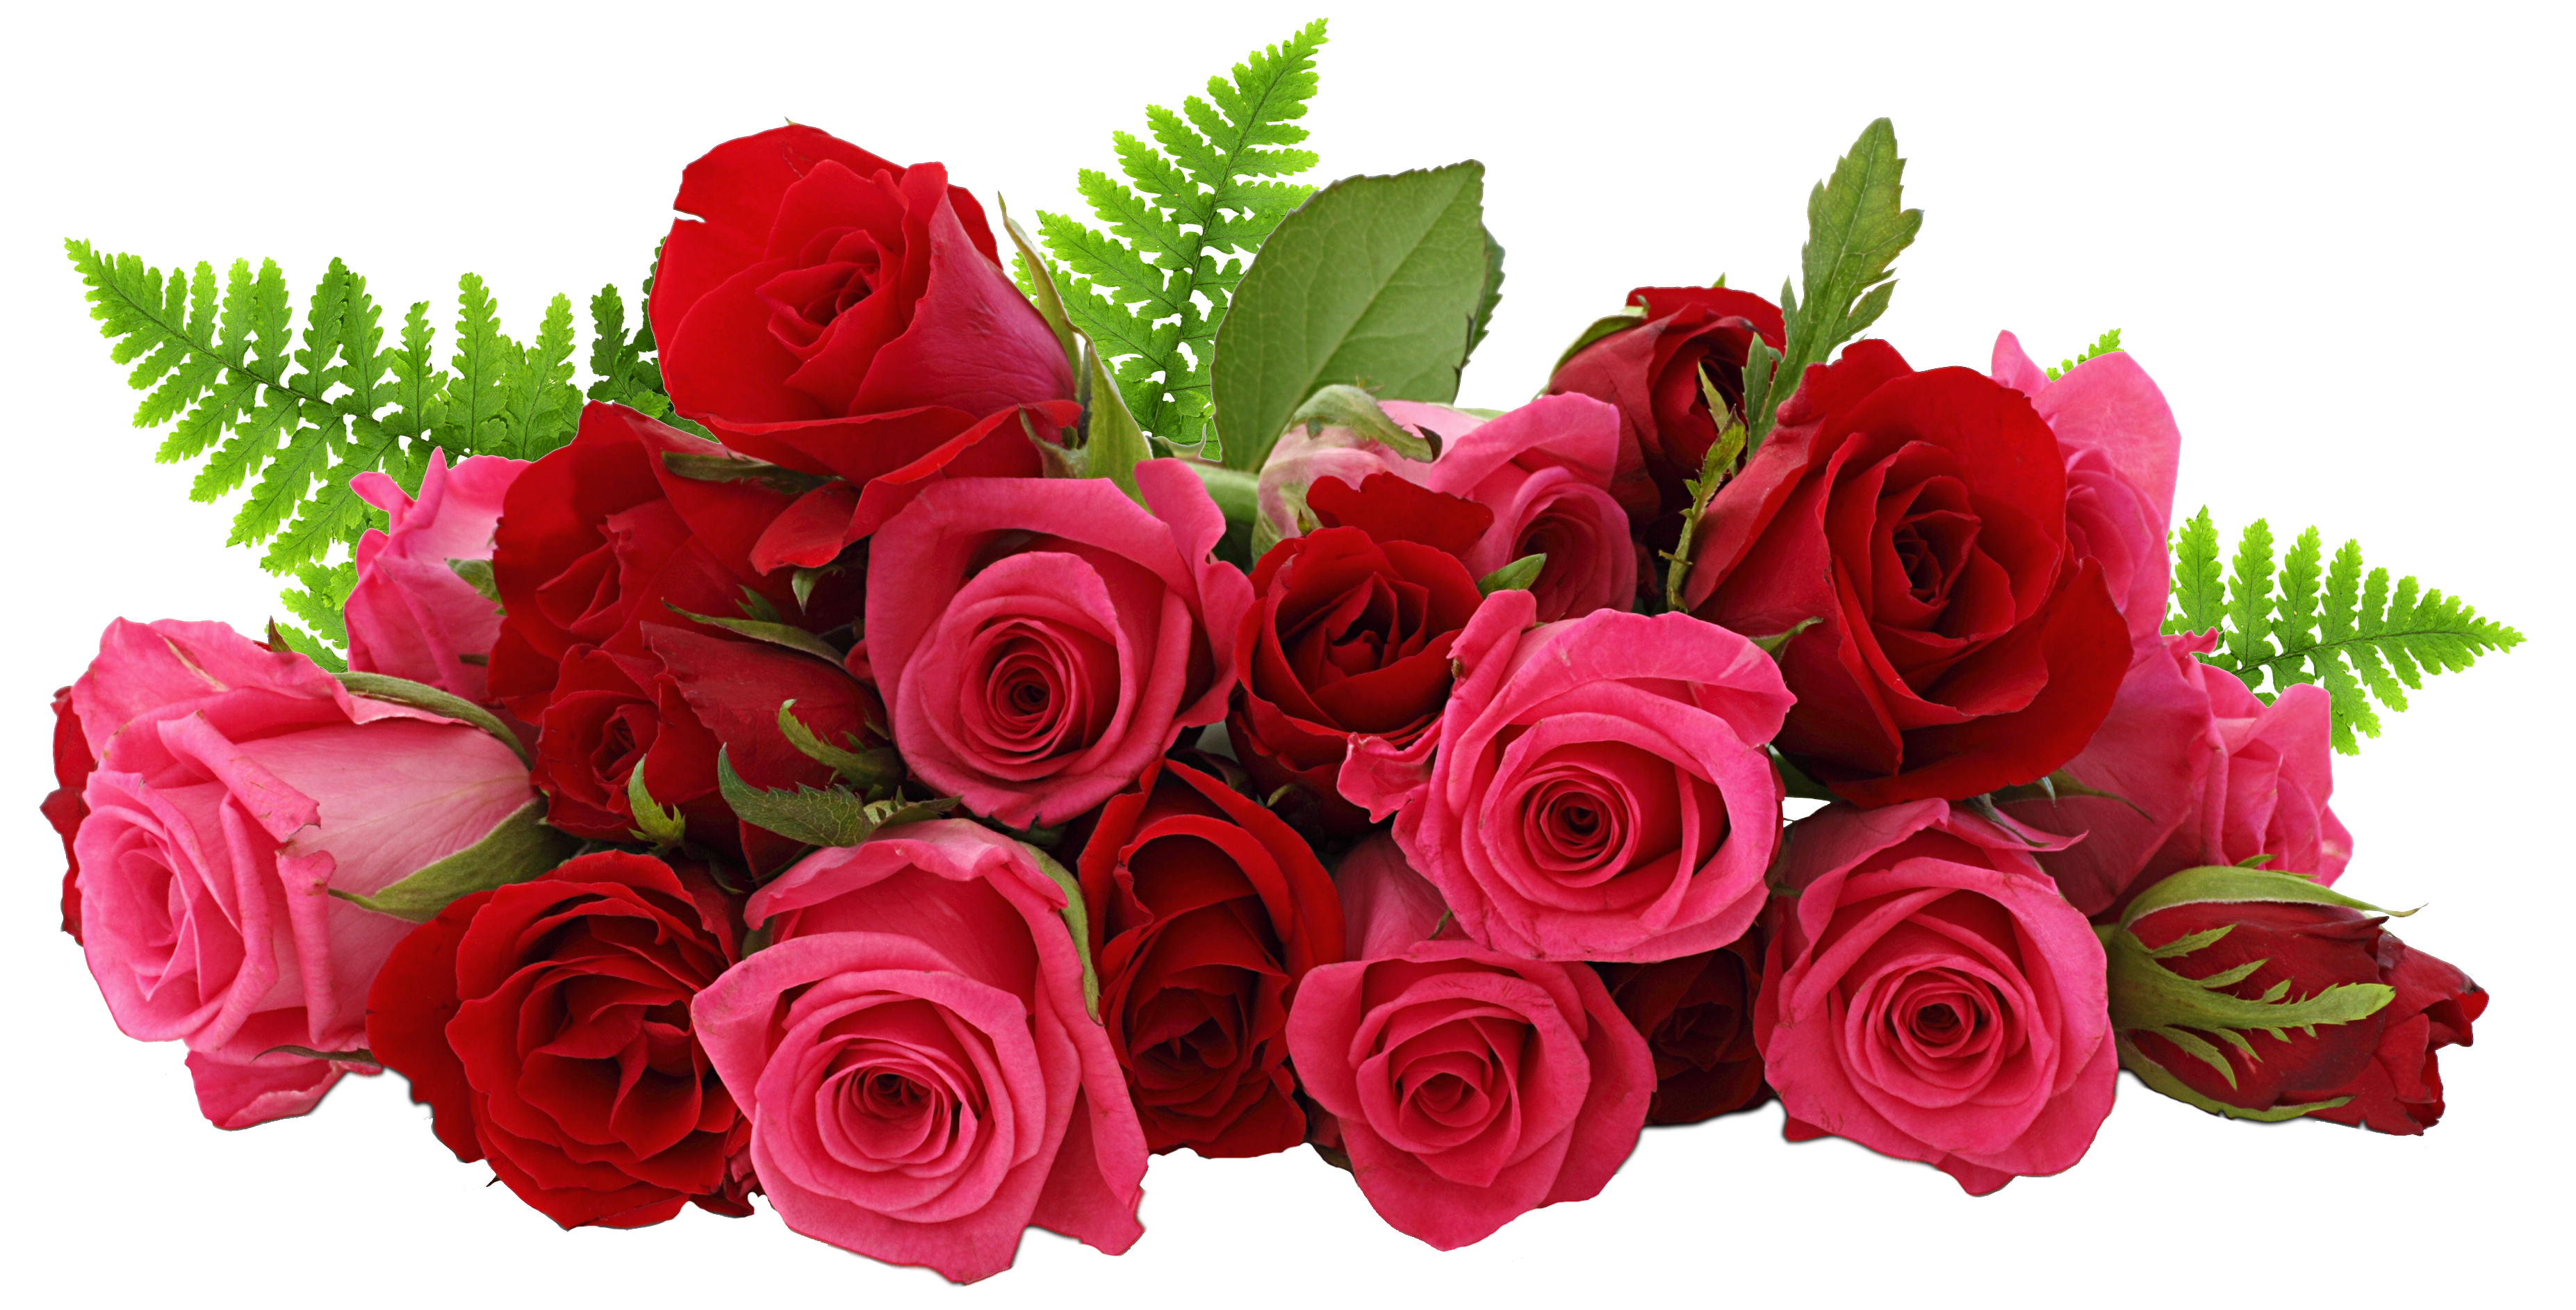 Roses png images. Red and pink picture